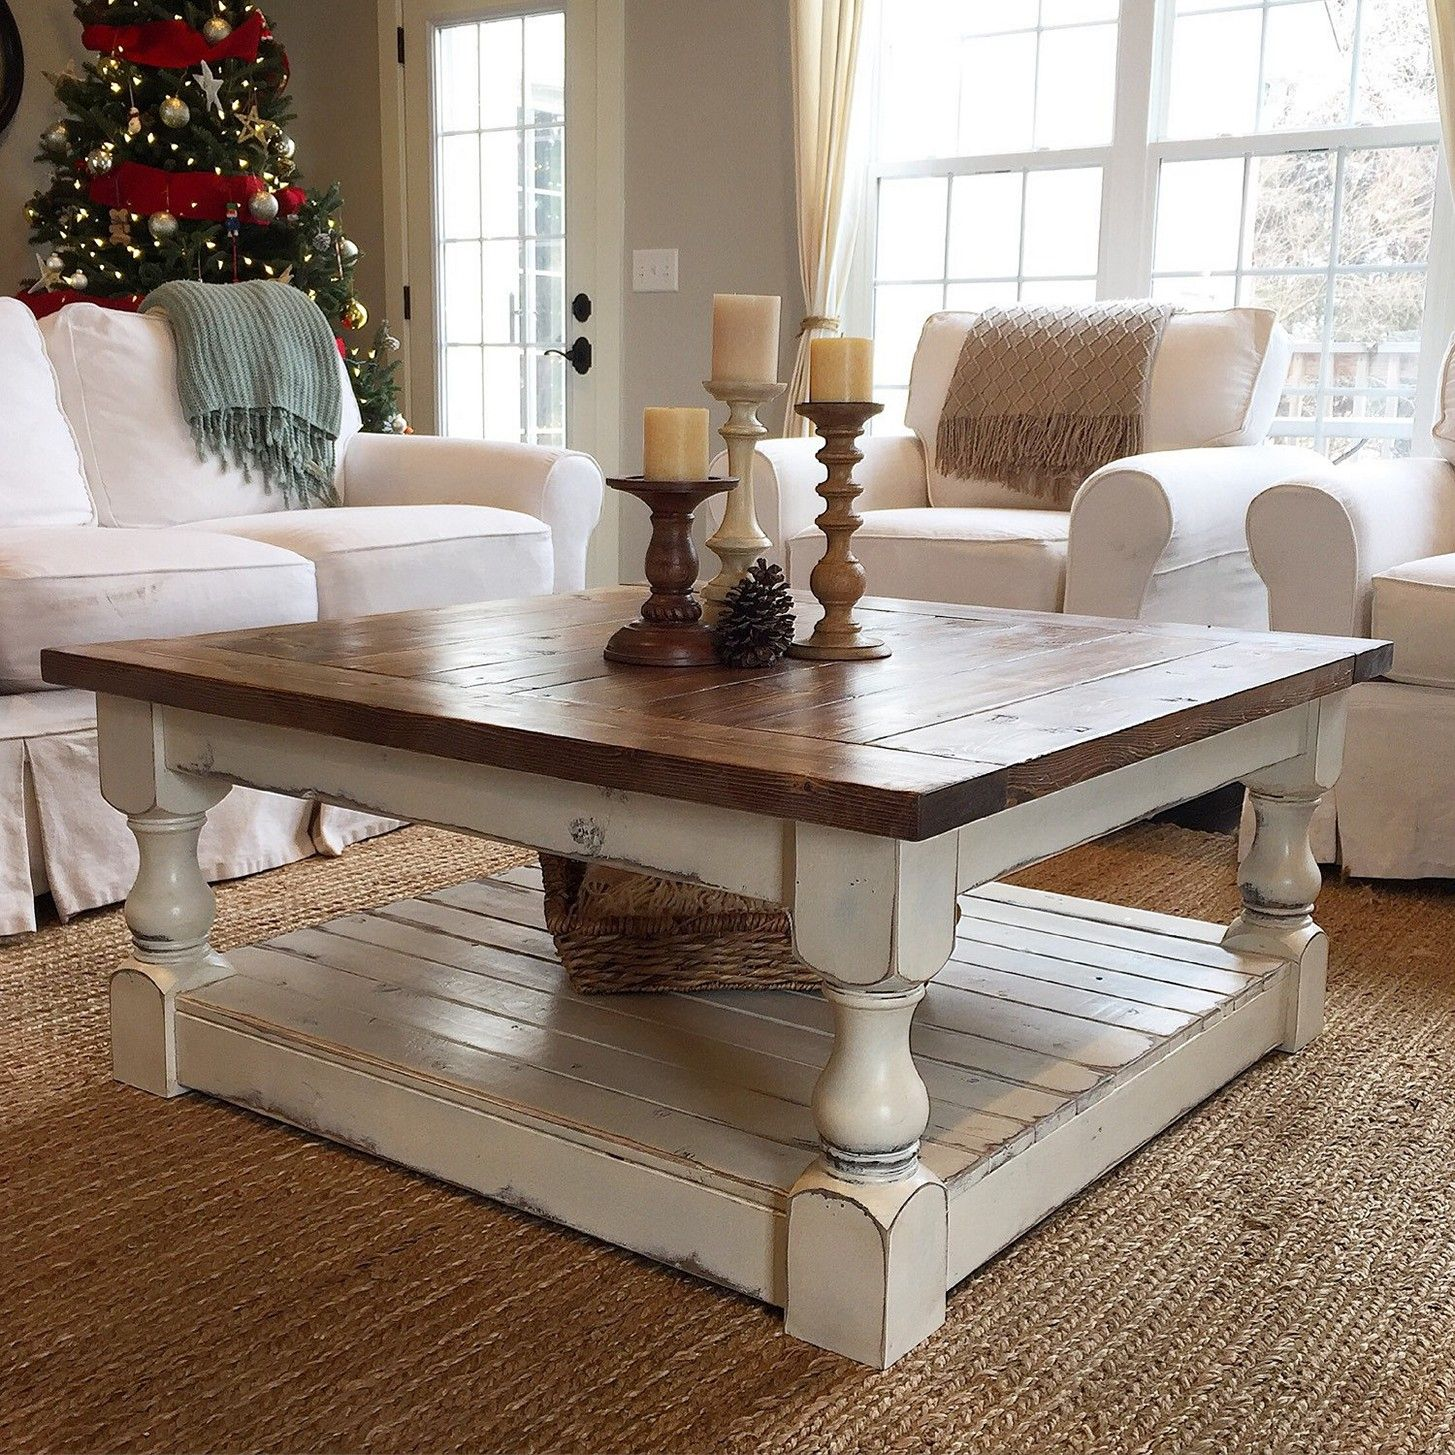 Distressed Farmhouse Living Room: Chunky Farmhouse Coffee Table Pictures …